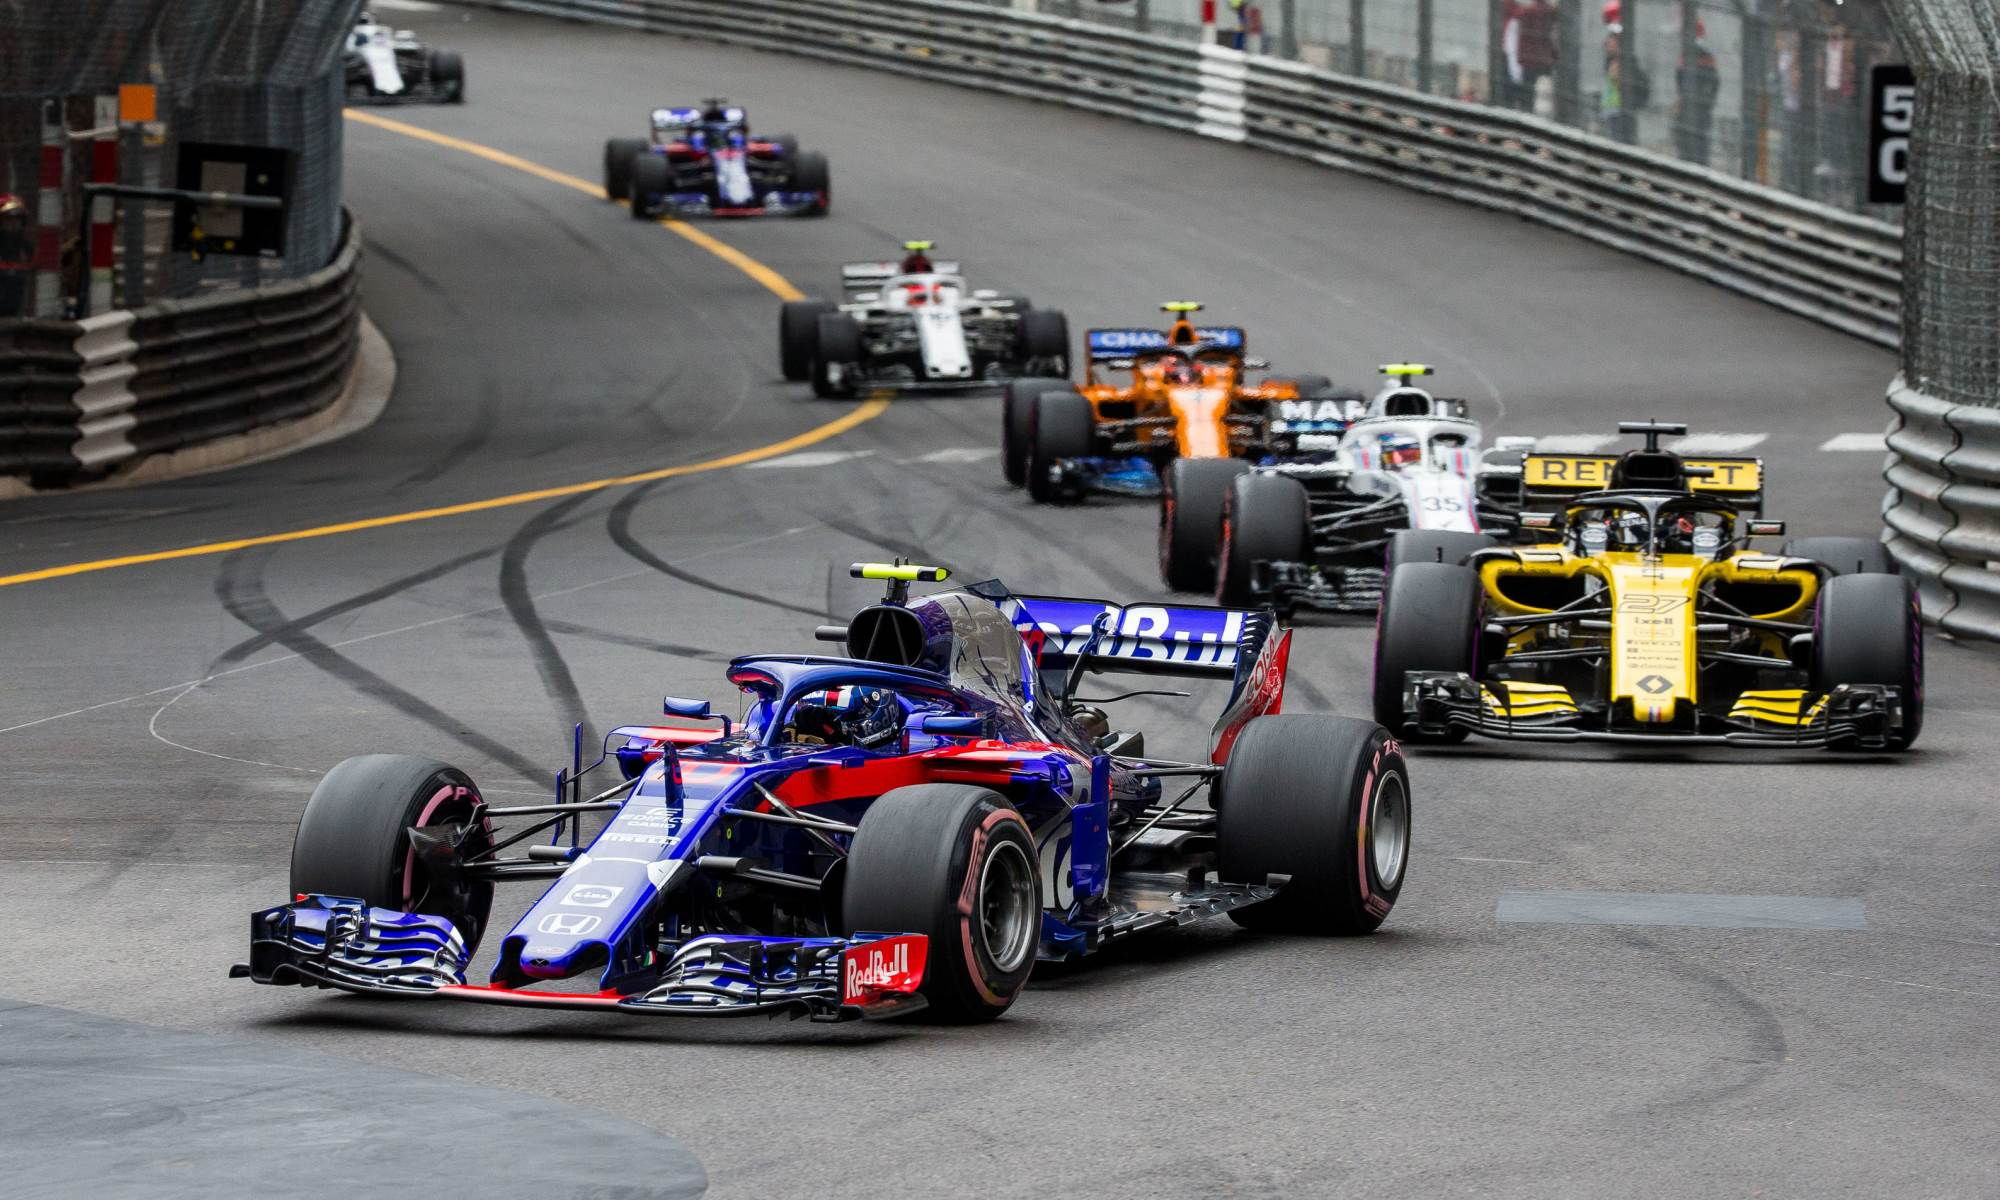 Toro Rosso have made progress with the Honda powerplant in 2018